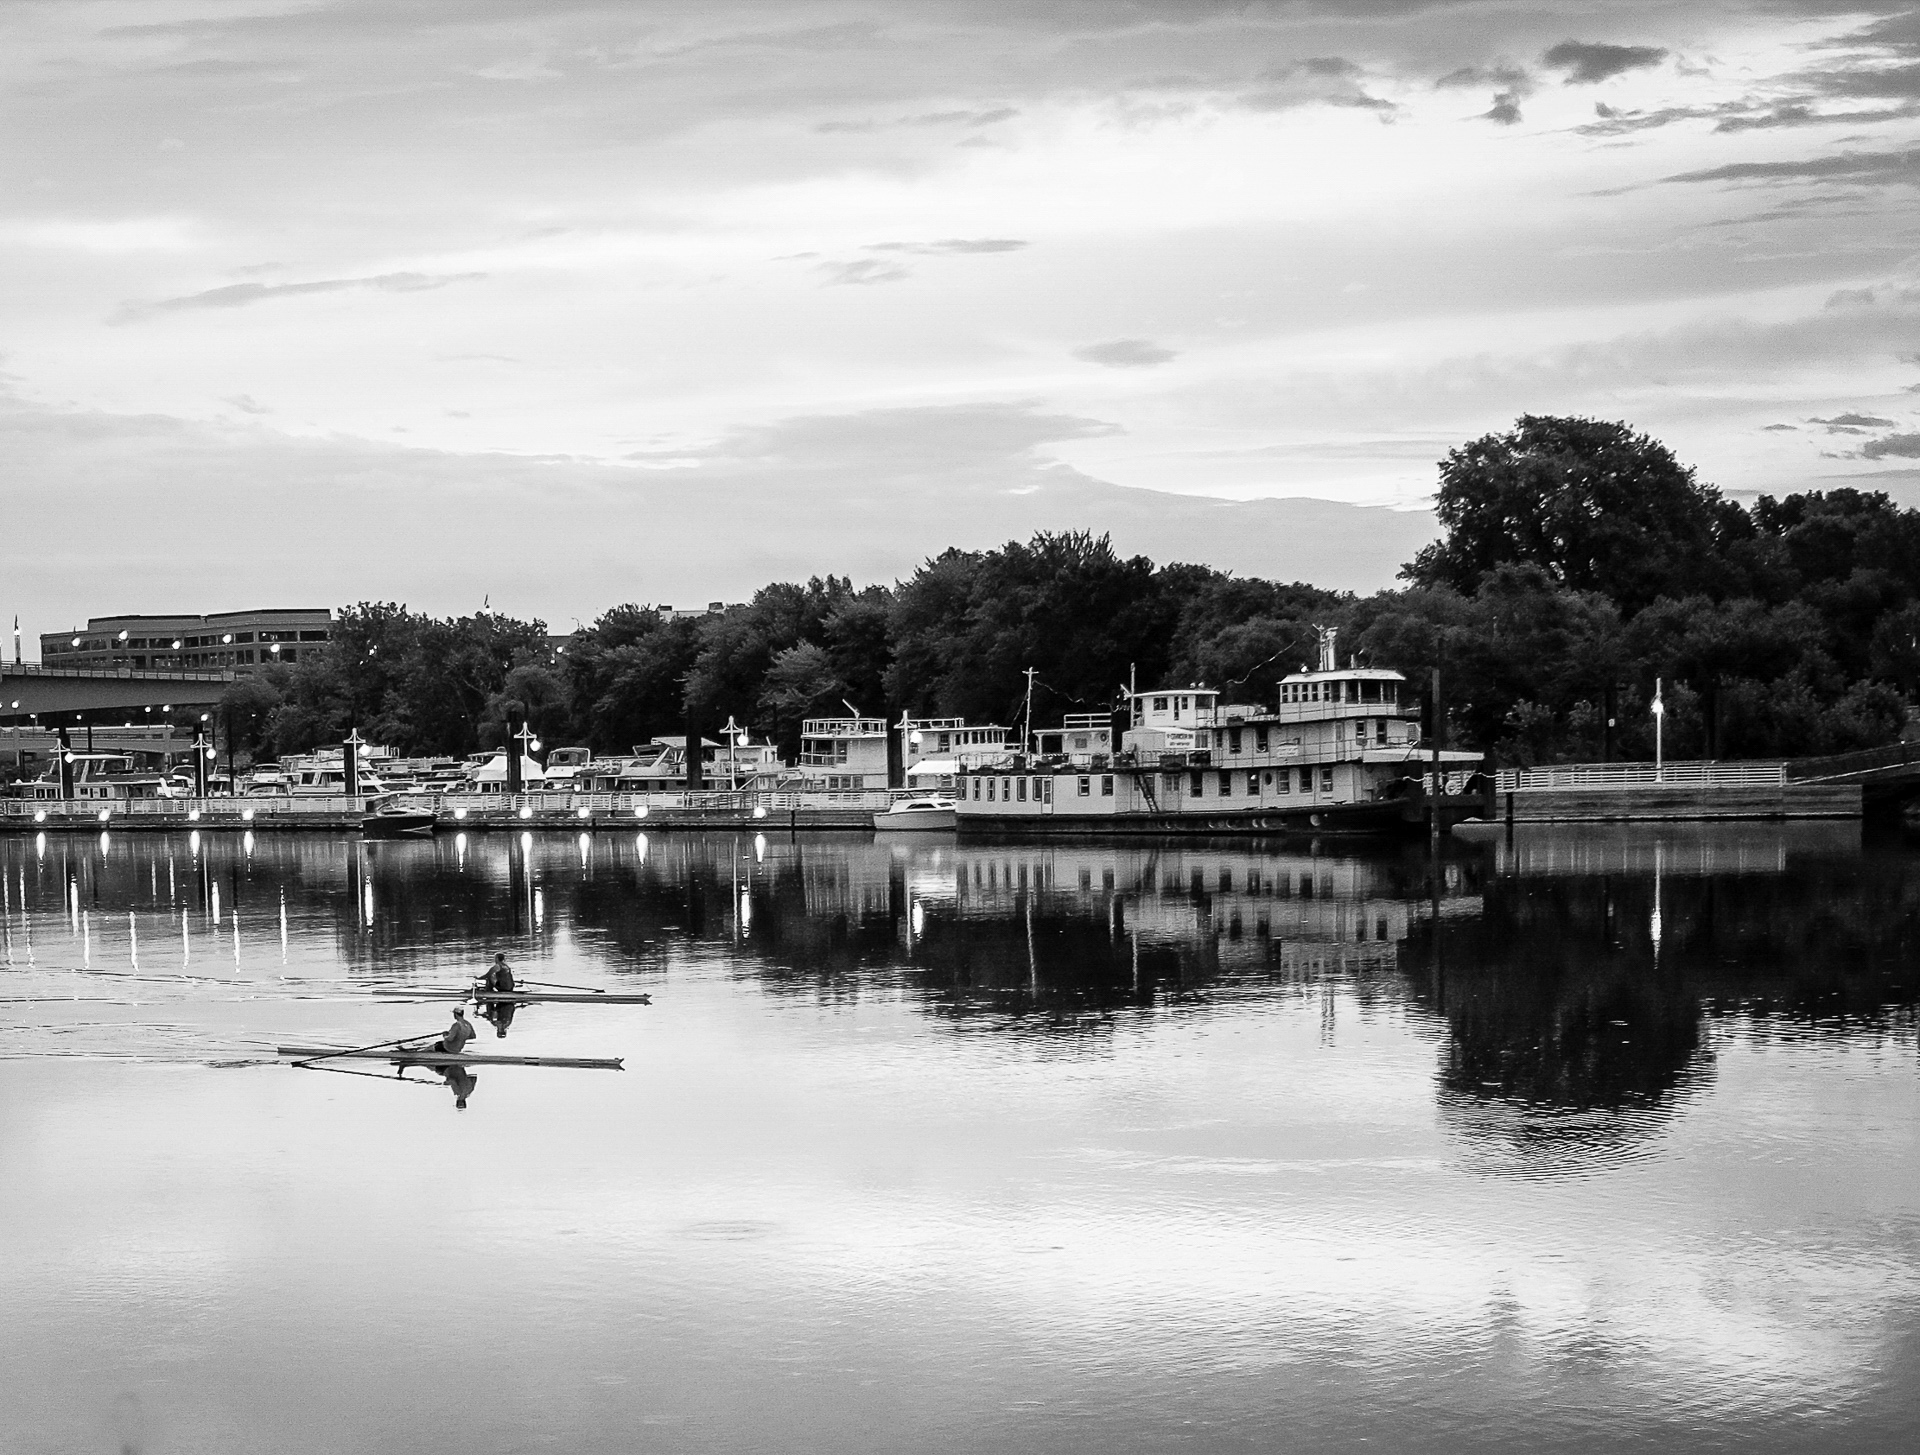 Early Morning Row - Monochrome Print (Open) - Name Withheld Per Request